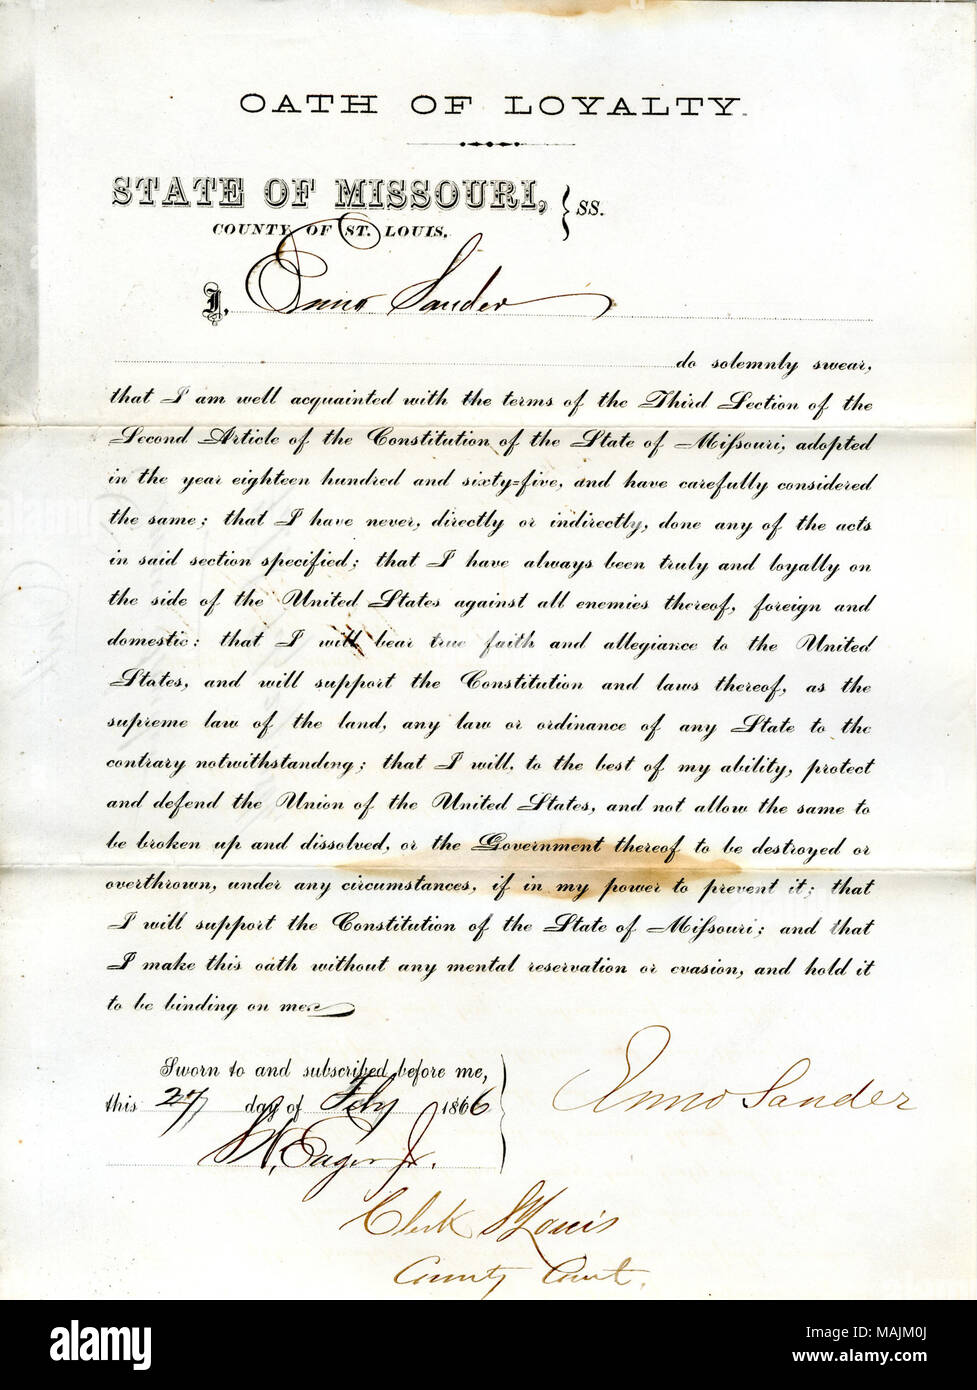 Swears oath of allegiance to the Government of the United States and the State of Missouri. Title: Loyalty oath of Enno Sander of Missouri, County of St. Louis  . 27 February 1866. Sander, E. - Stock Image